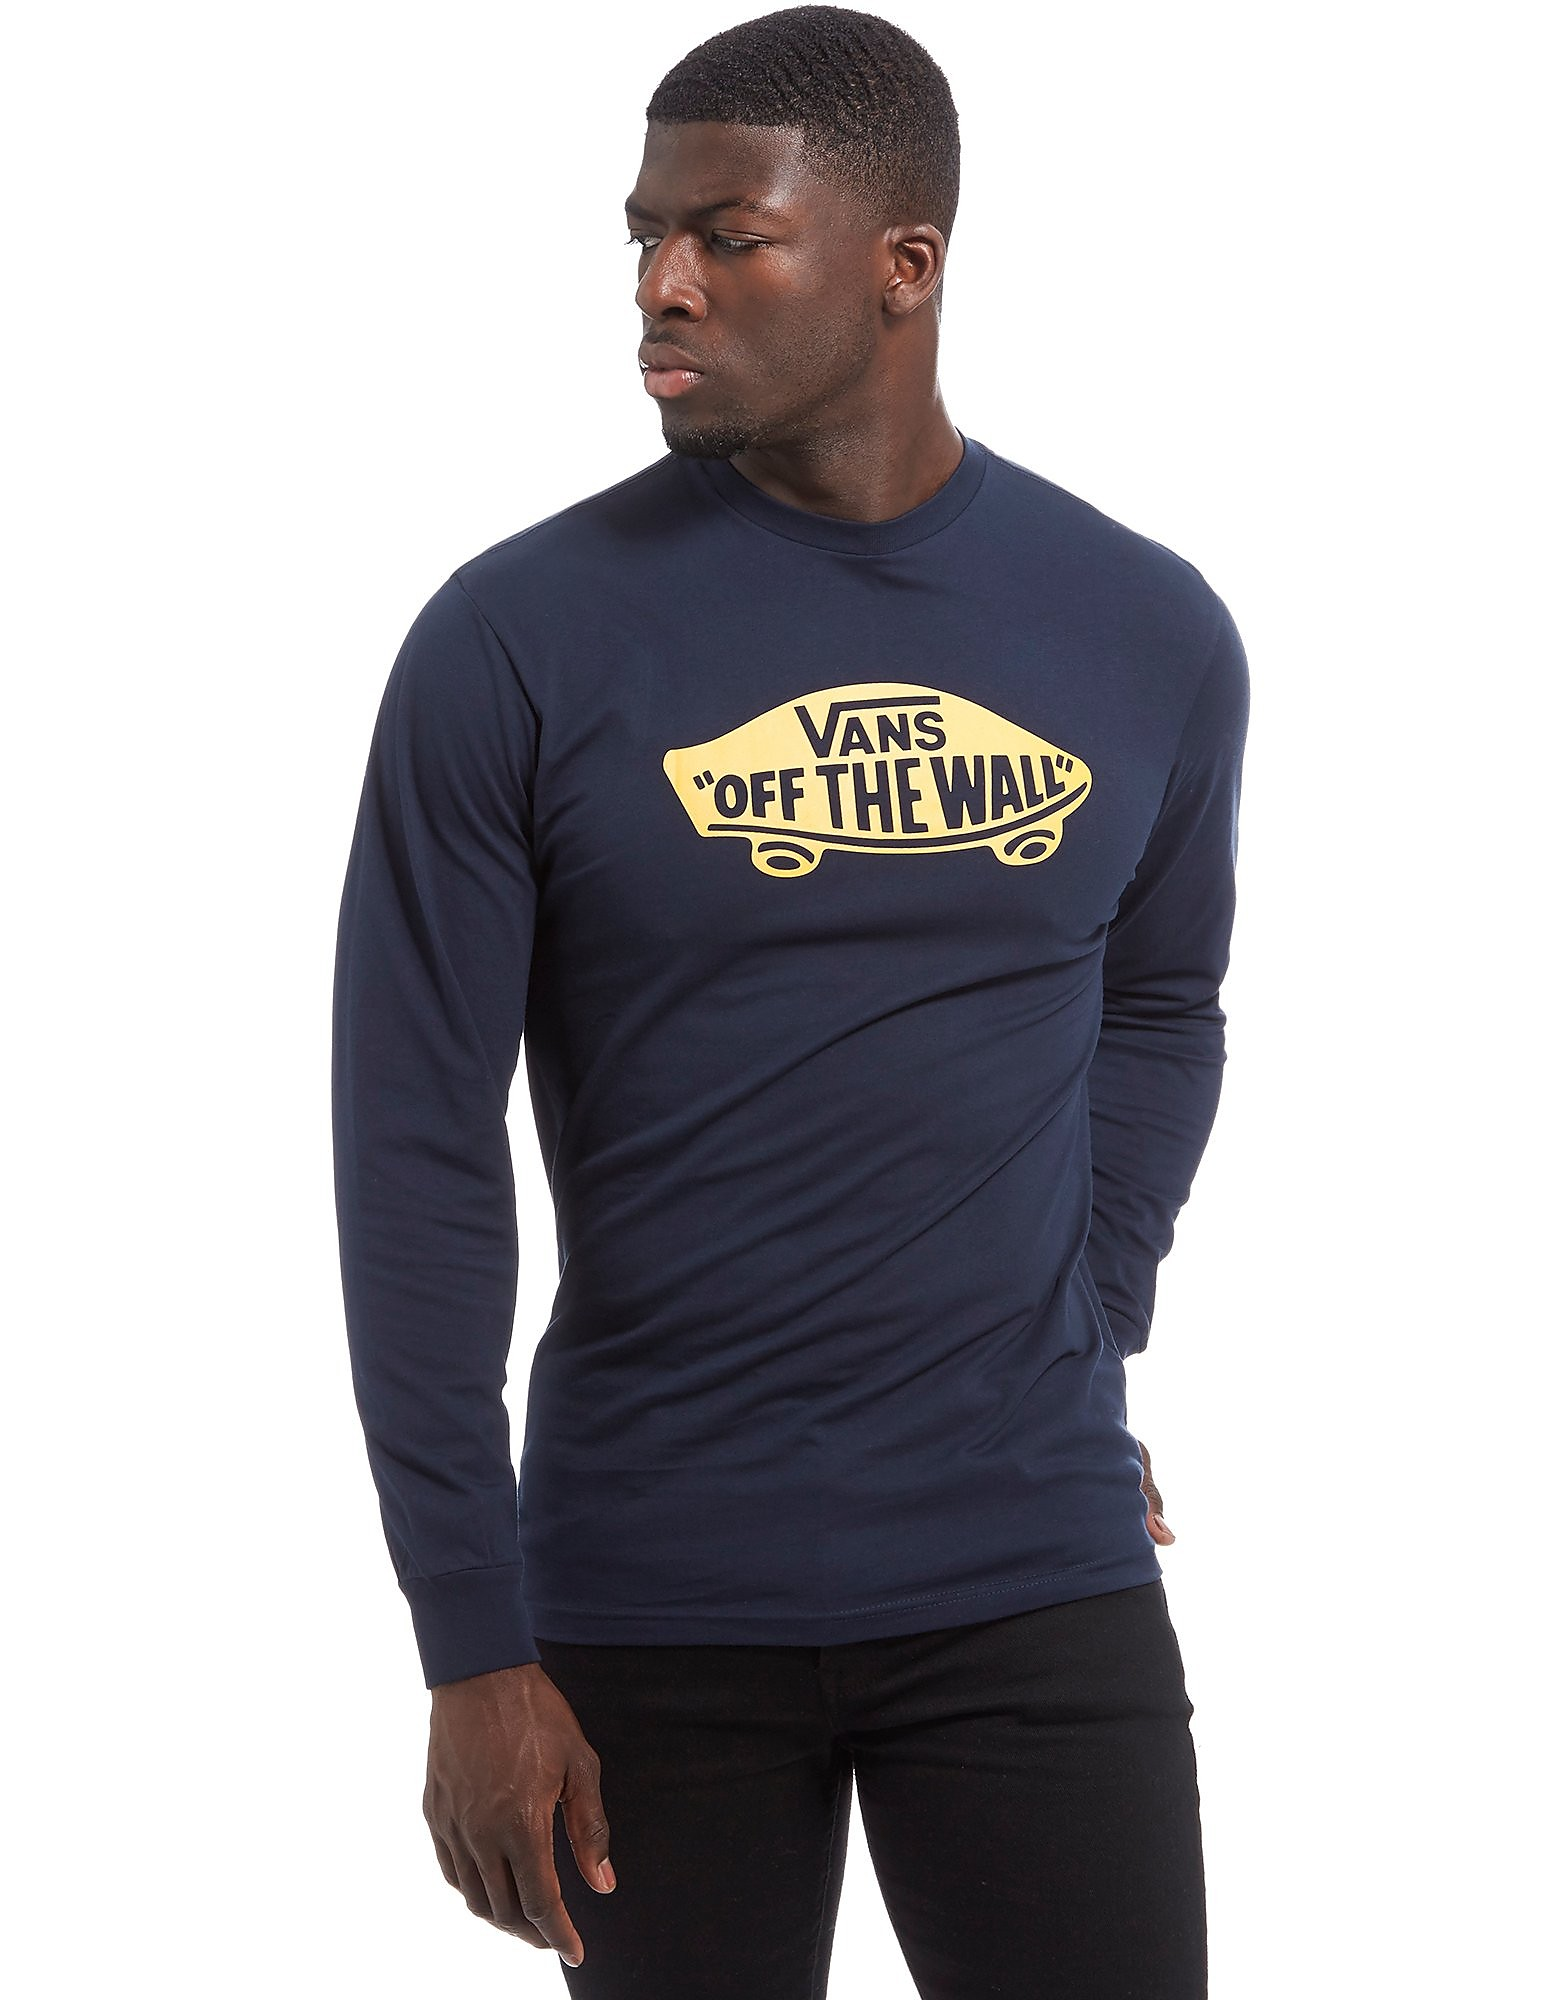 Vans Off The Wall Long Sleeve T-Shirt